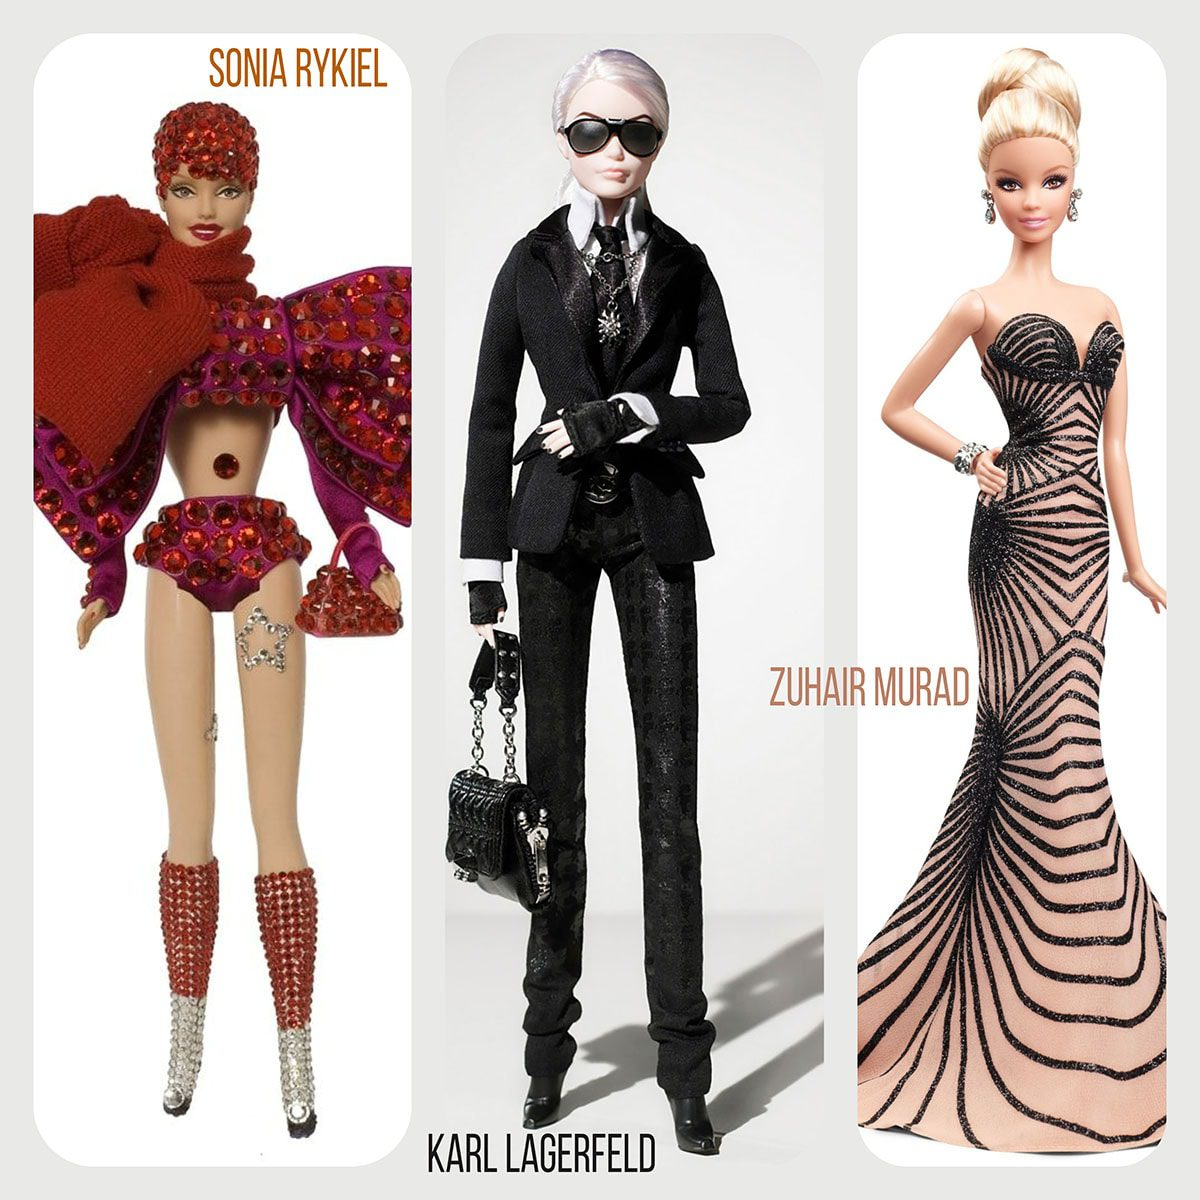 Barbie by Sonia Rykiel, Karl Lagerfeld and Zuhair Murad by Runway Magazine